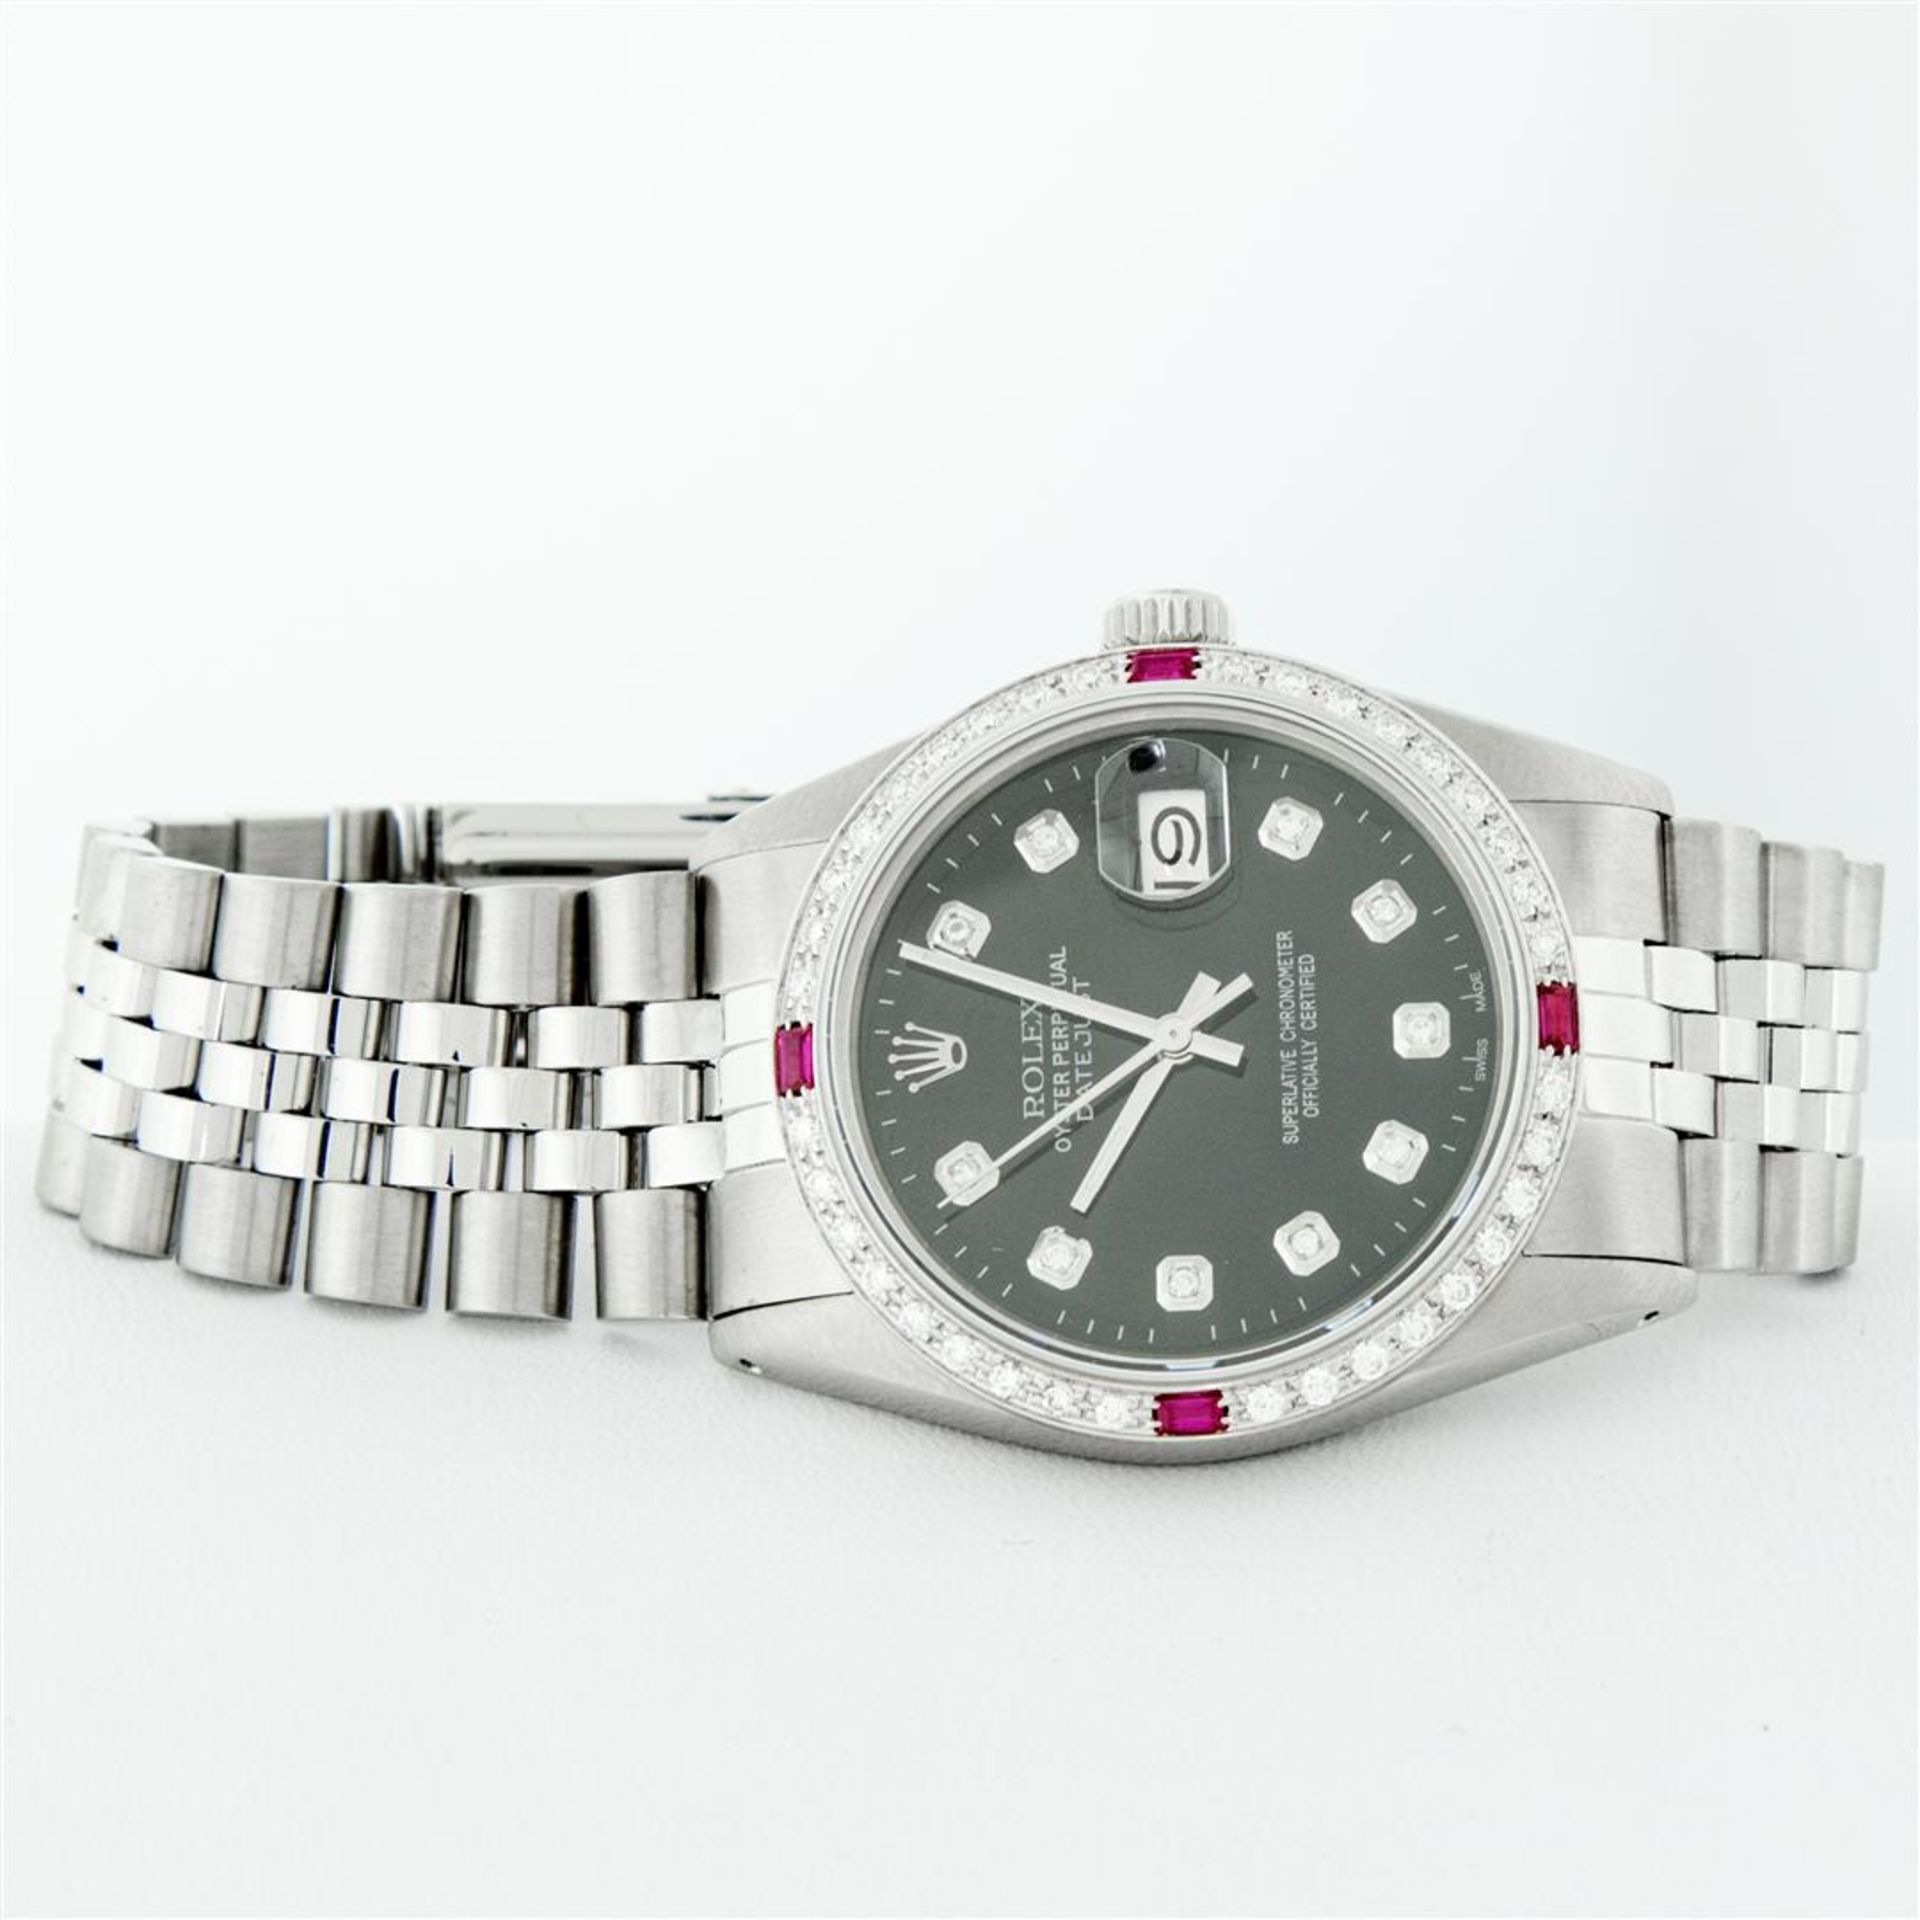 Rolex Mens Stainless Steel Black Diamond & Ruby 36MM Datejust Wristwatch Oyster - Image 4 of 9